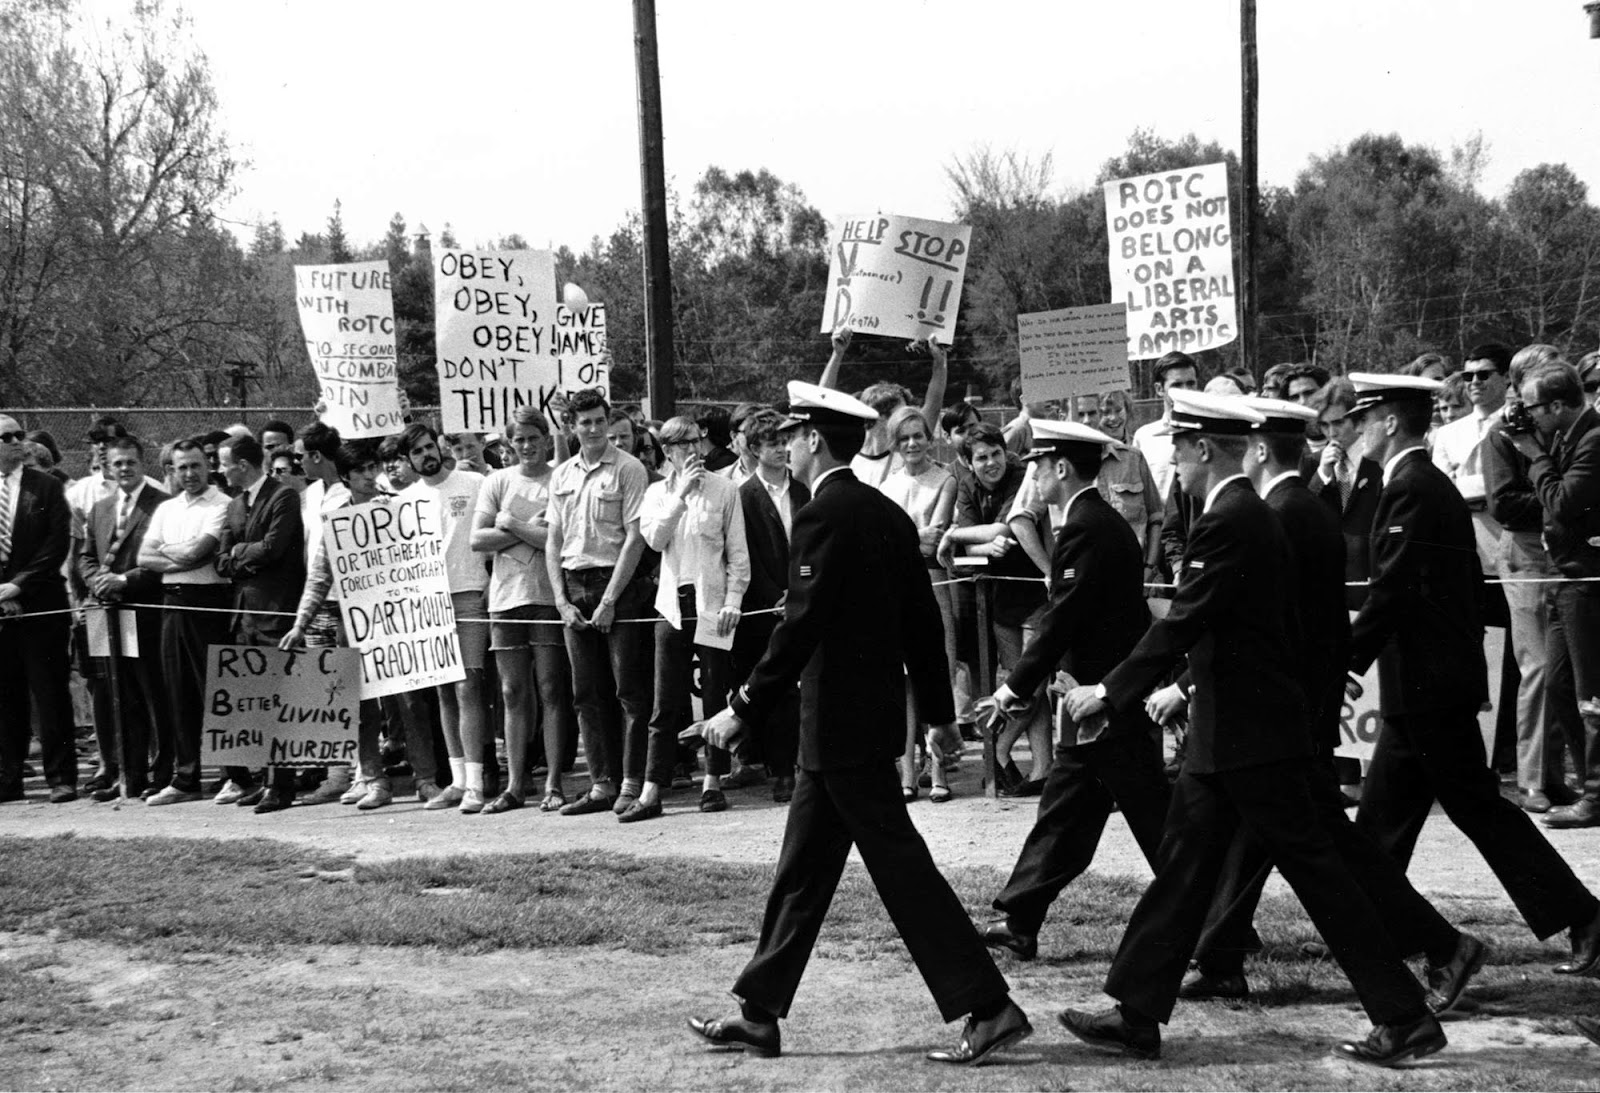 A photograph of a small group of men in uniform walking past a protest.